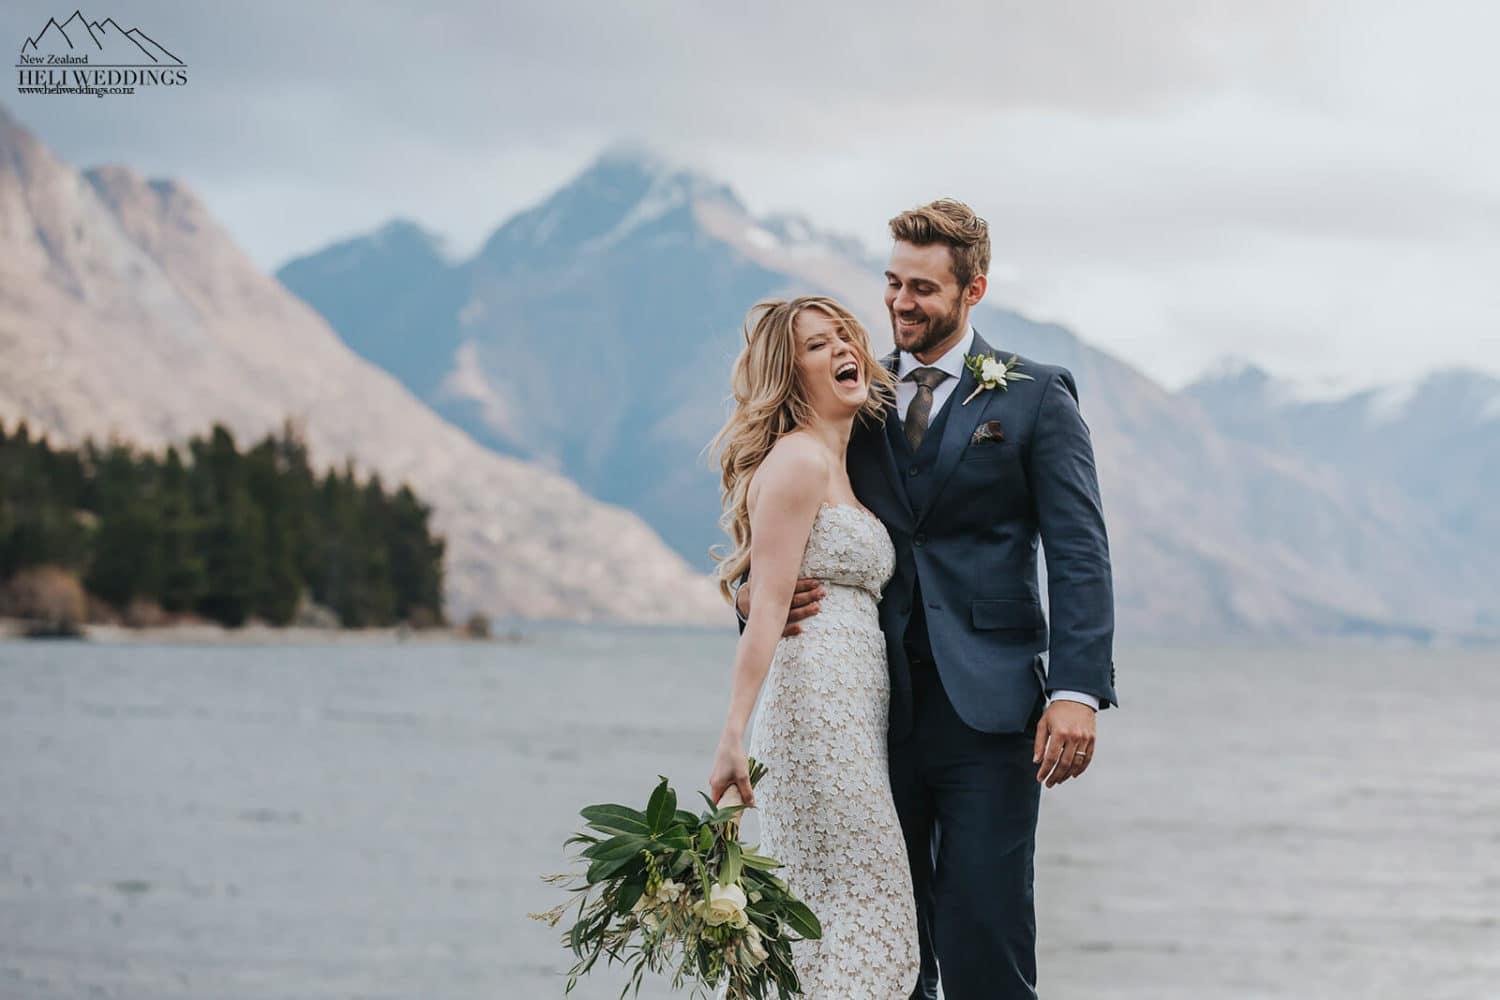 Queenstown Winter Wedding,Have fun on your wedding day